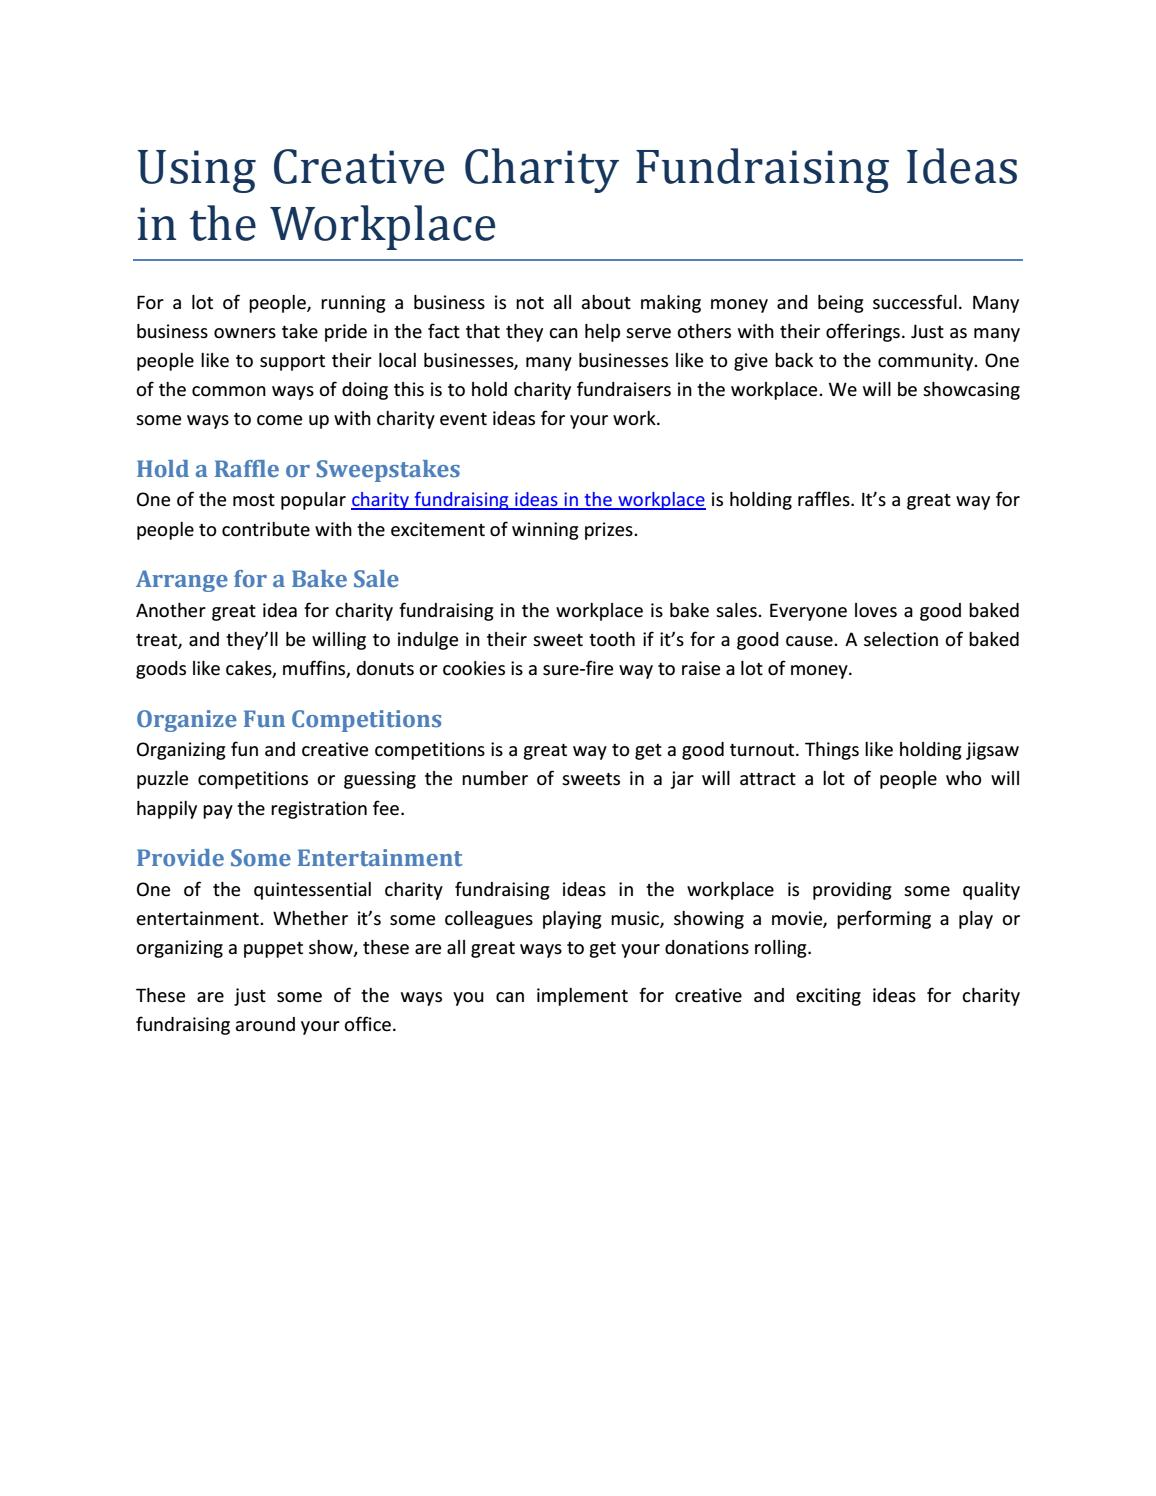 Using Creative Charity Fundraising Ideas In The Workplace By Akshita02 Sharma Issuu